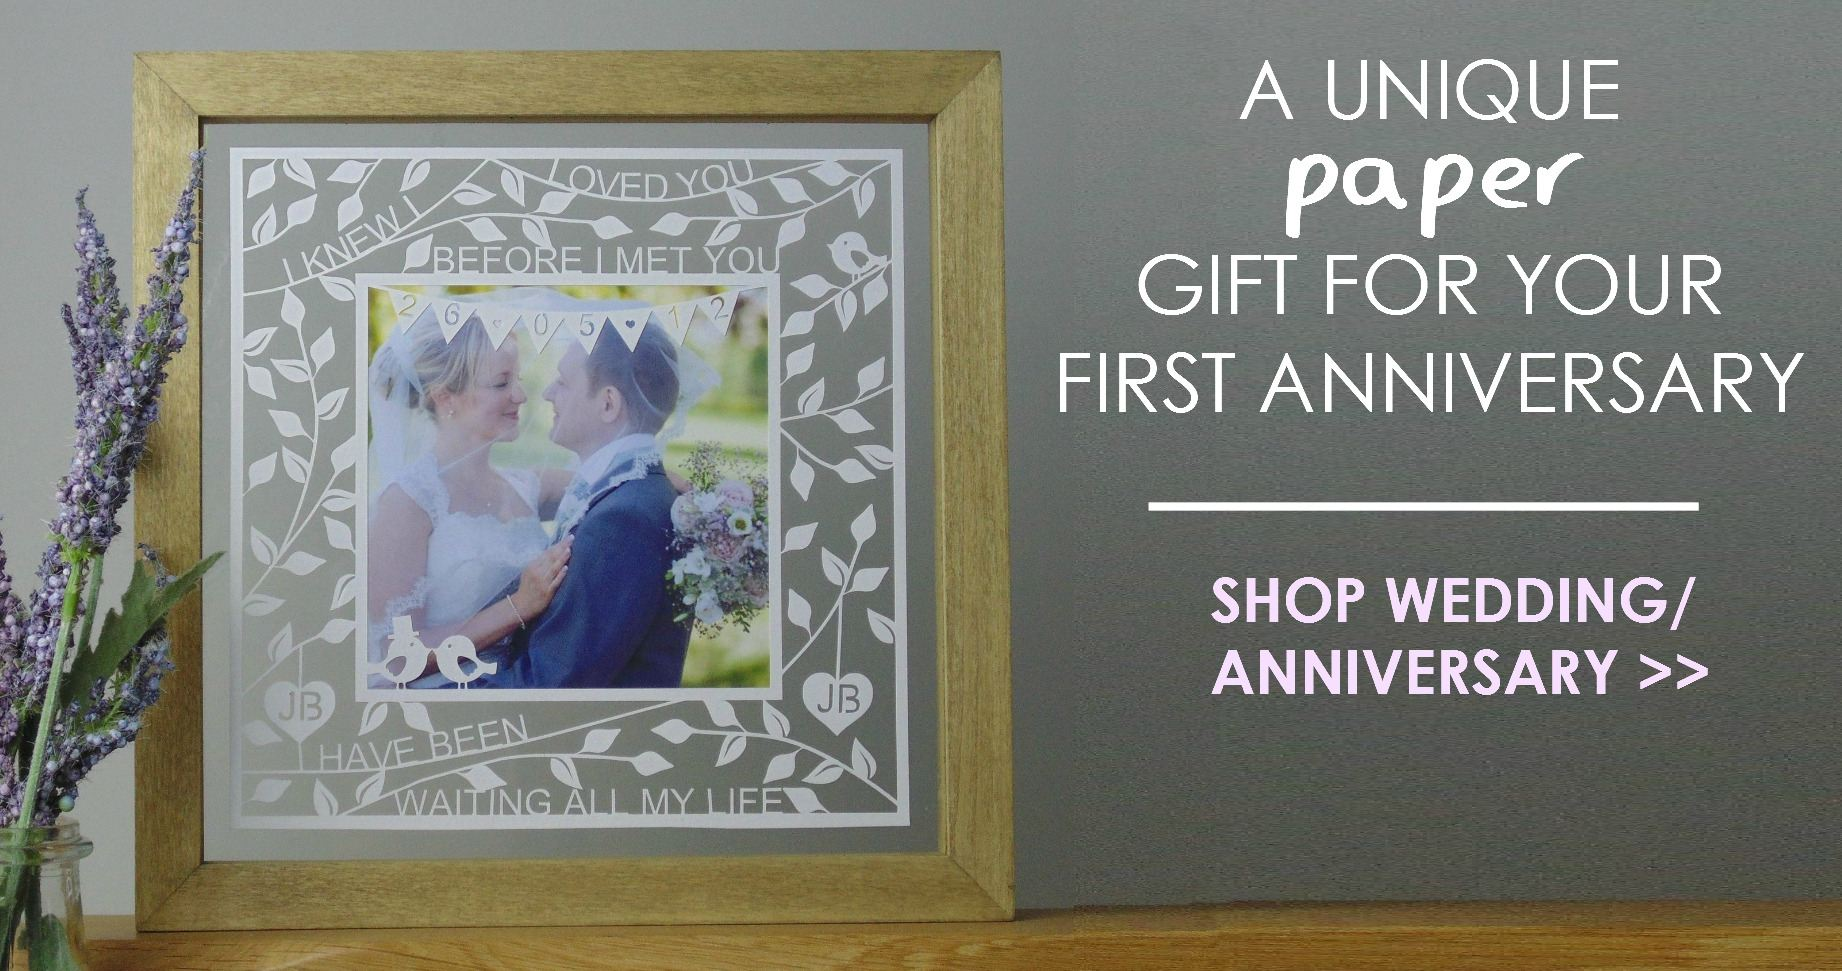 30th Wedding Anniversary Gifts For Mum And Dad: Fiftieth Anniversary Gifts For Mom And Dad